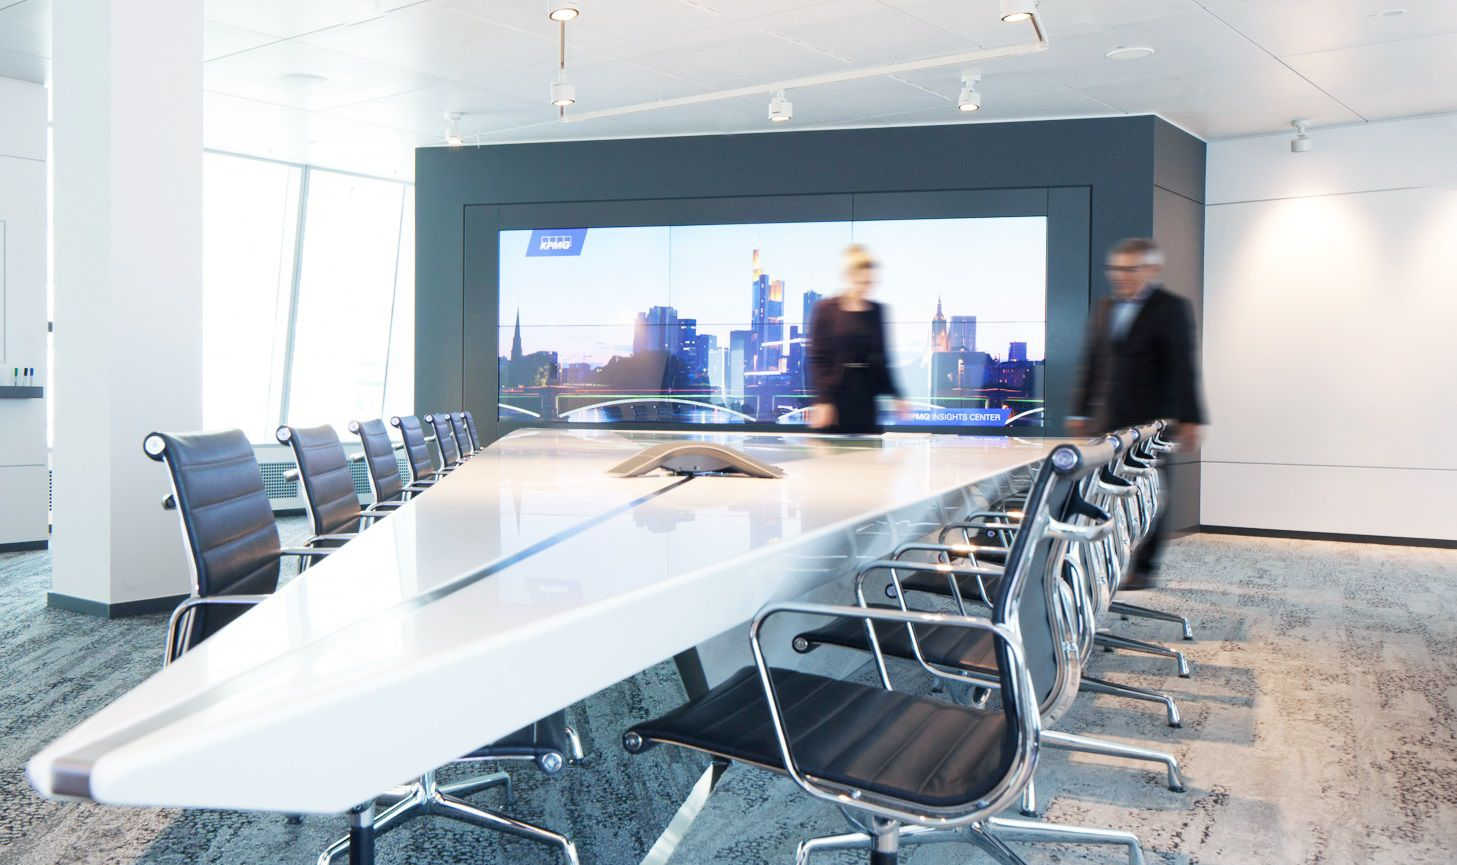 Chairs and table in meeting room